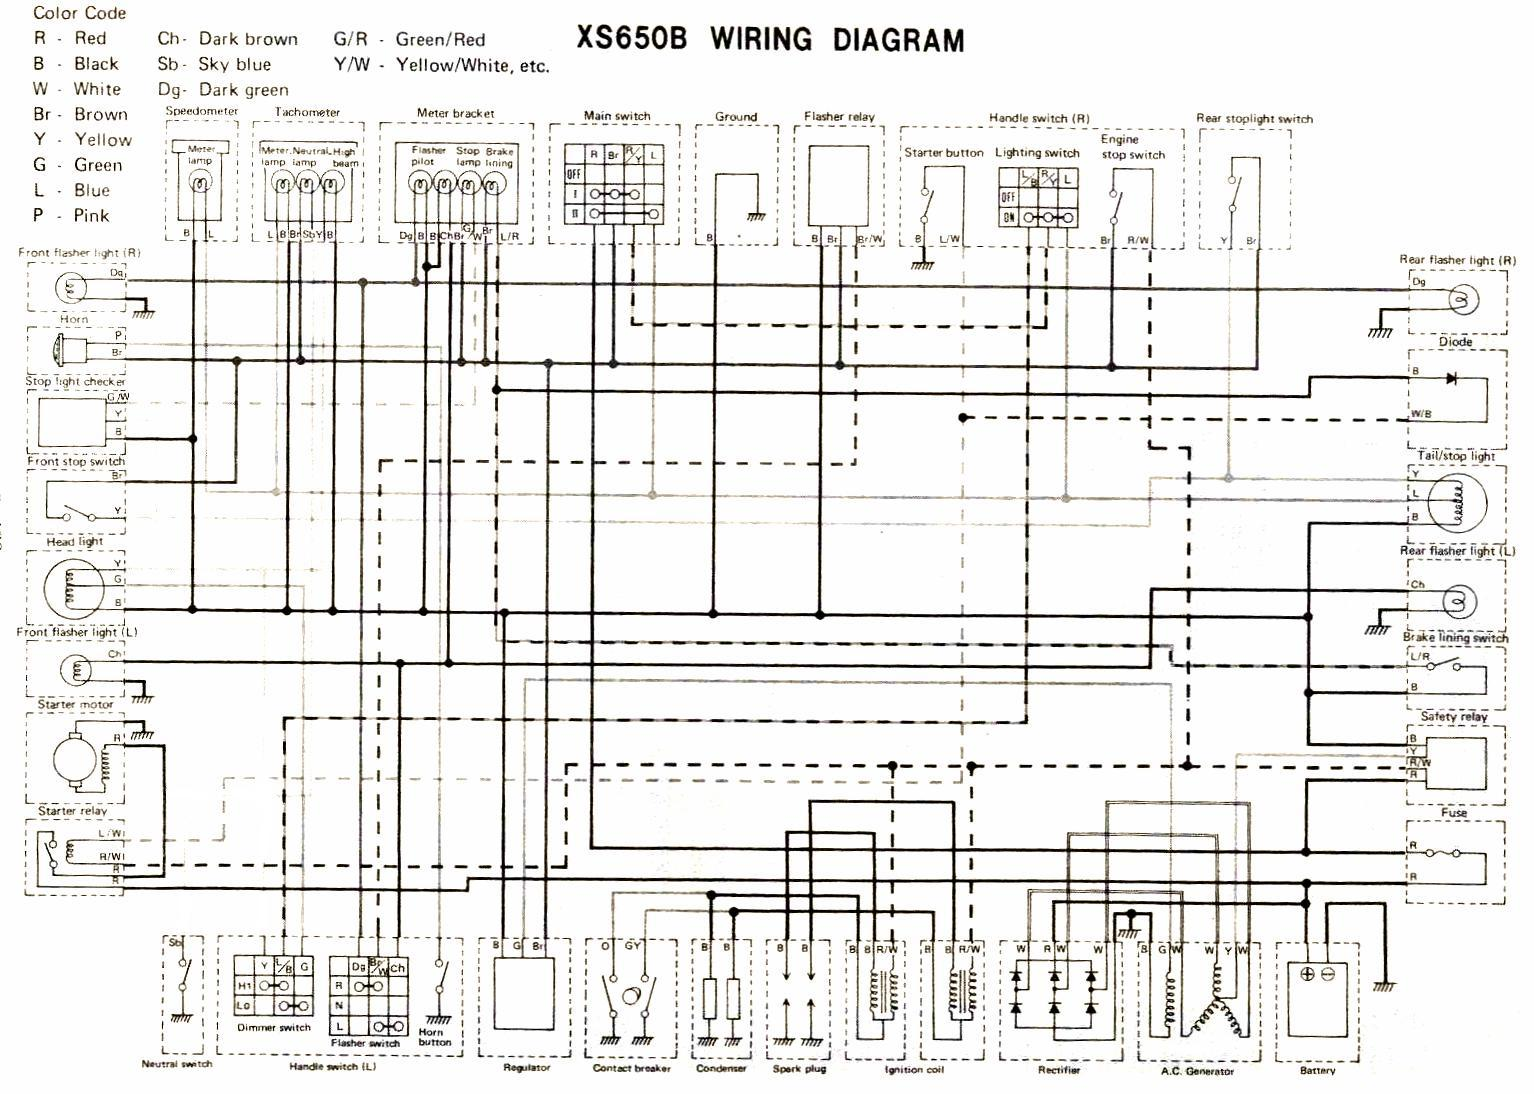 1977 Cb550 Wiring Diagram Data Honda Cb750 Harness Generator In Addition Rh Autonomia Co Chopper Motorcycle Diagrams